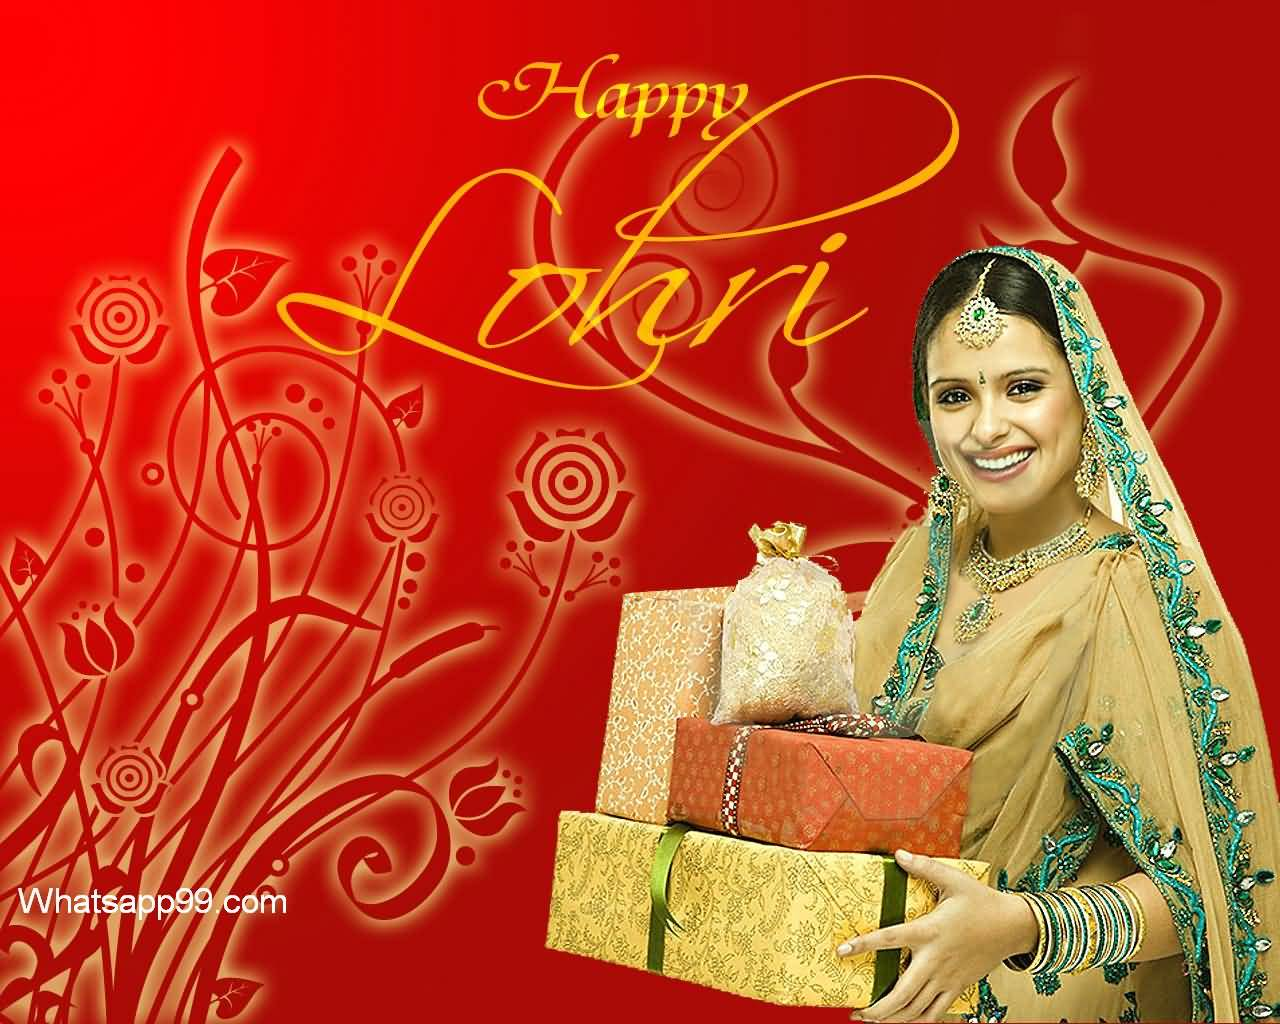 Happy Lohri Greetings You & Your Family Wishes Image